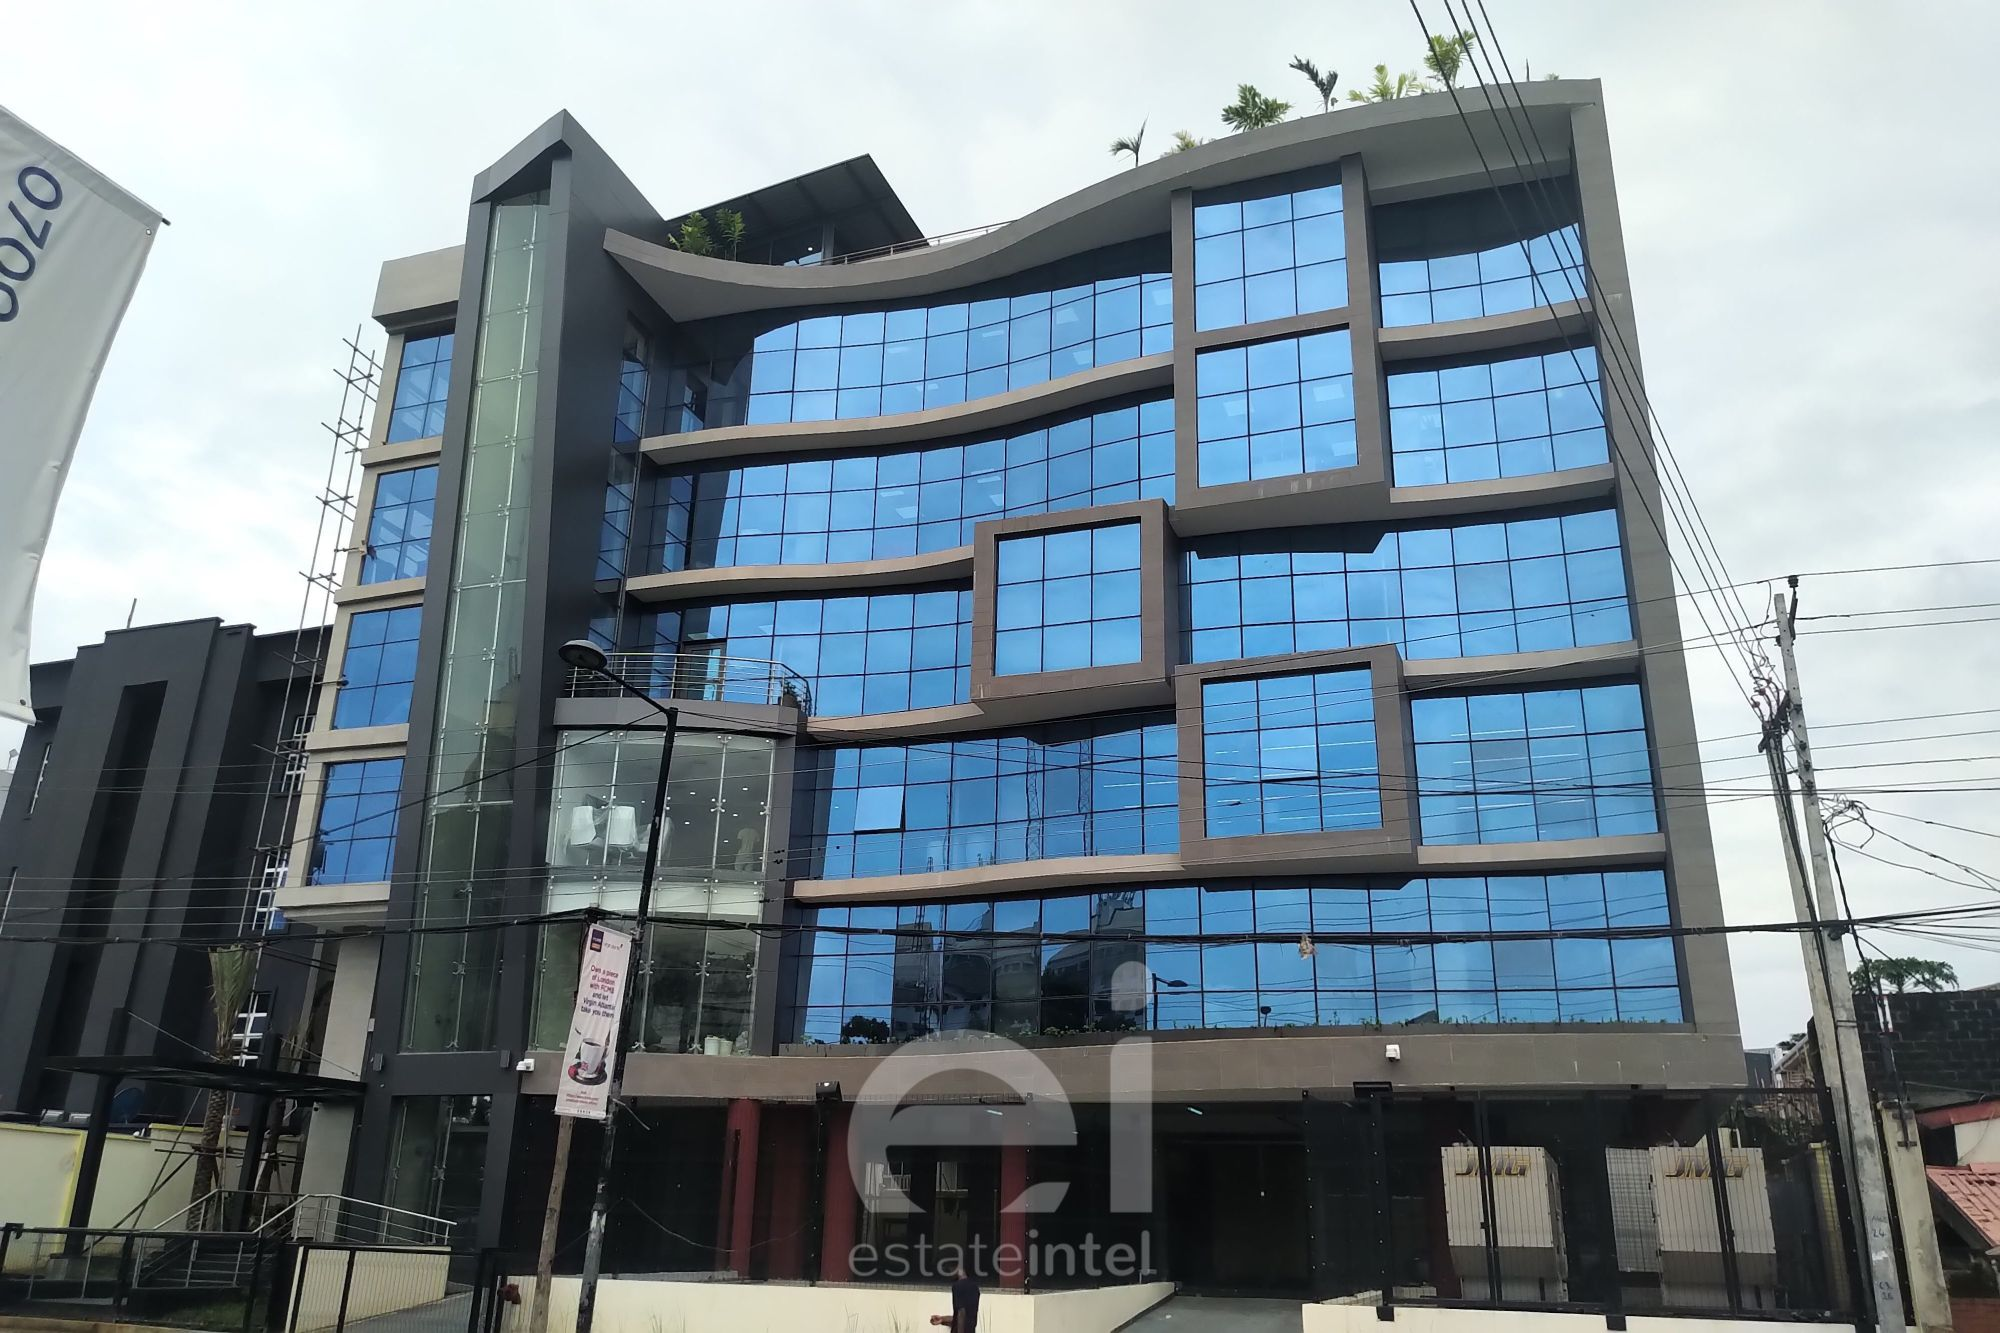 Lagos' biggest Lawyers are becoming your landlords - Brand Spur